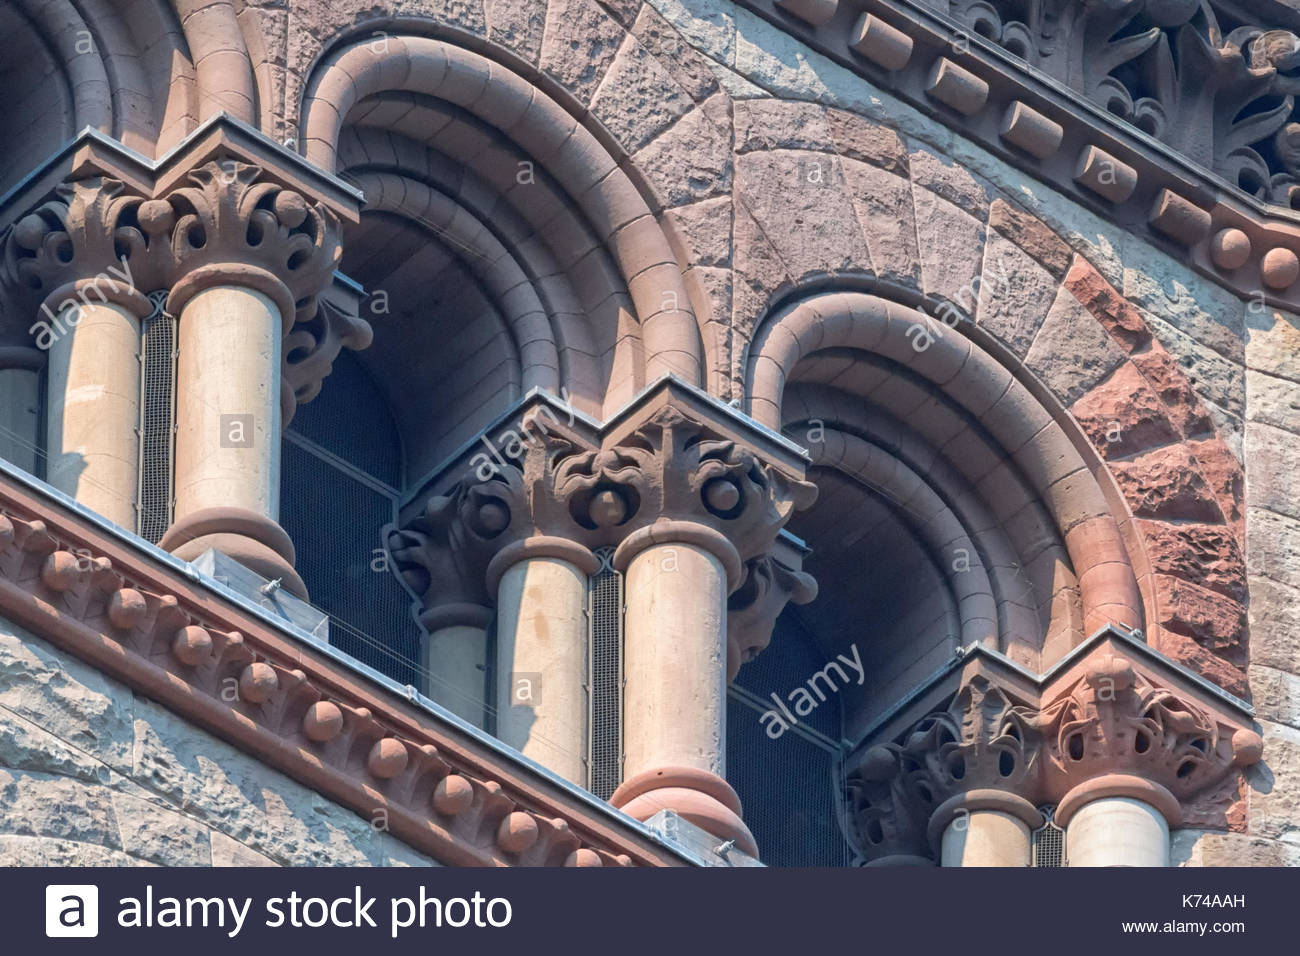 Old City Hall Richardsonian Romanesque Revival architectural details.Columns and arches in windows.  The red stone old building is a tourist attractio - Stock Image